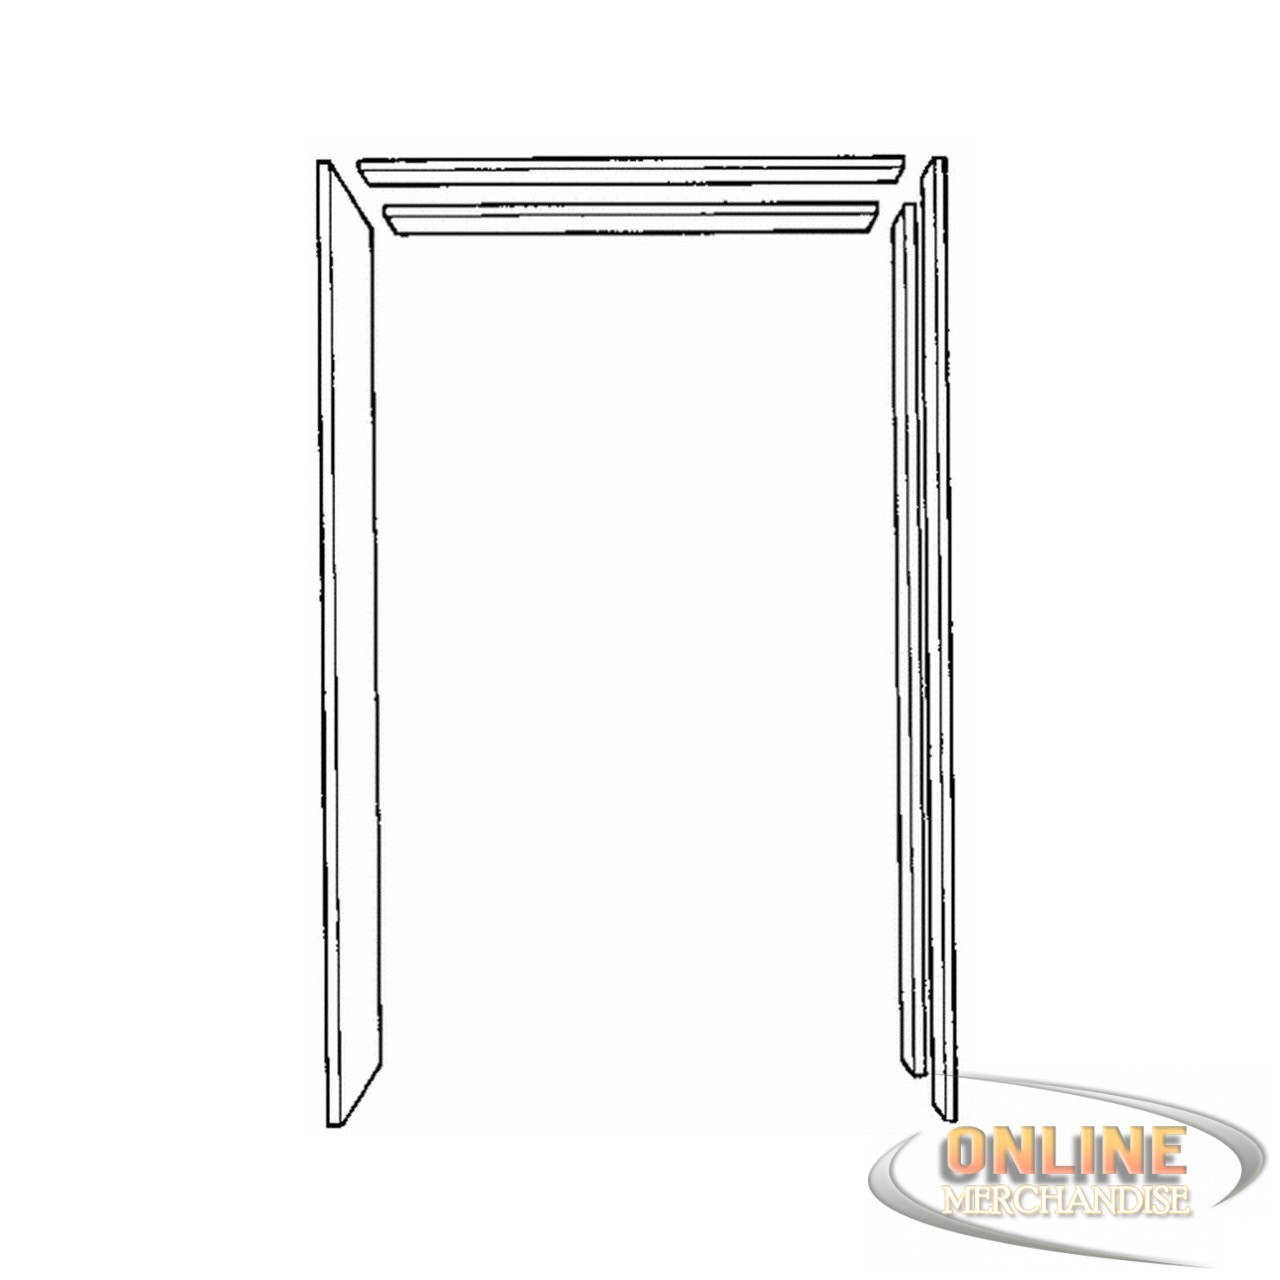 Johnson prod 15113068 pocket door frame jamb kit free ship for Door frame kit